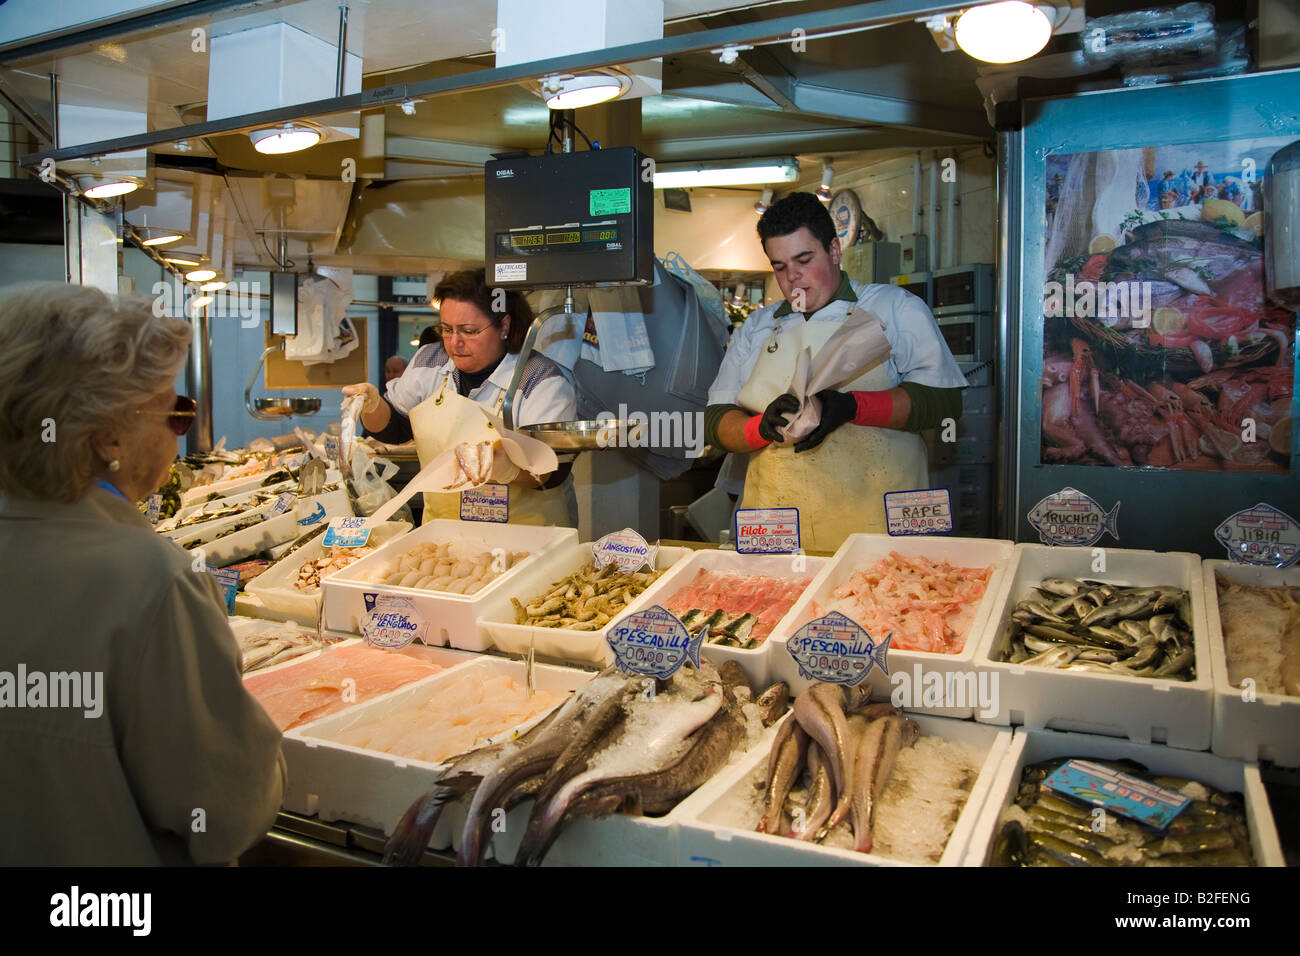 SPAIN Salamanca Man and woman prepare fish and seafood for customers at indoor market seafood and fish displayed - Stock Image